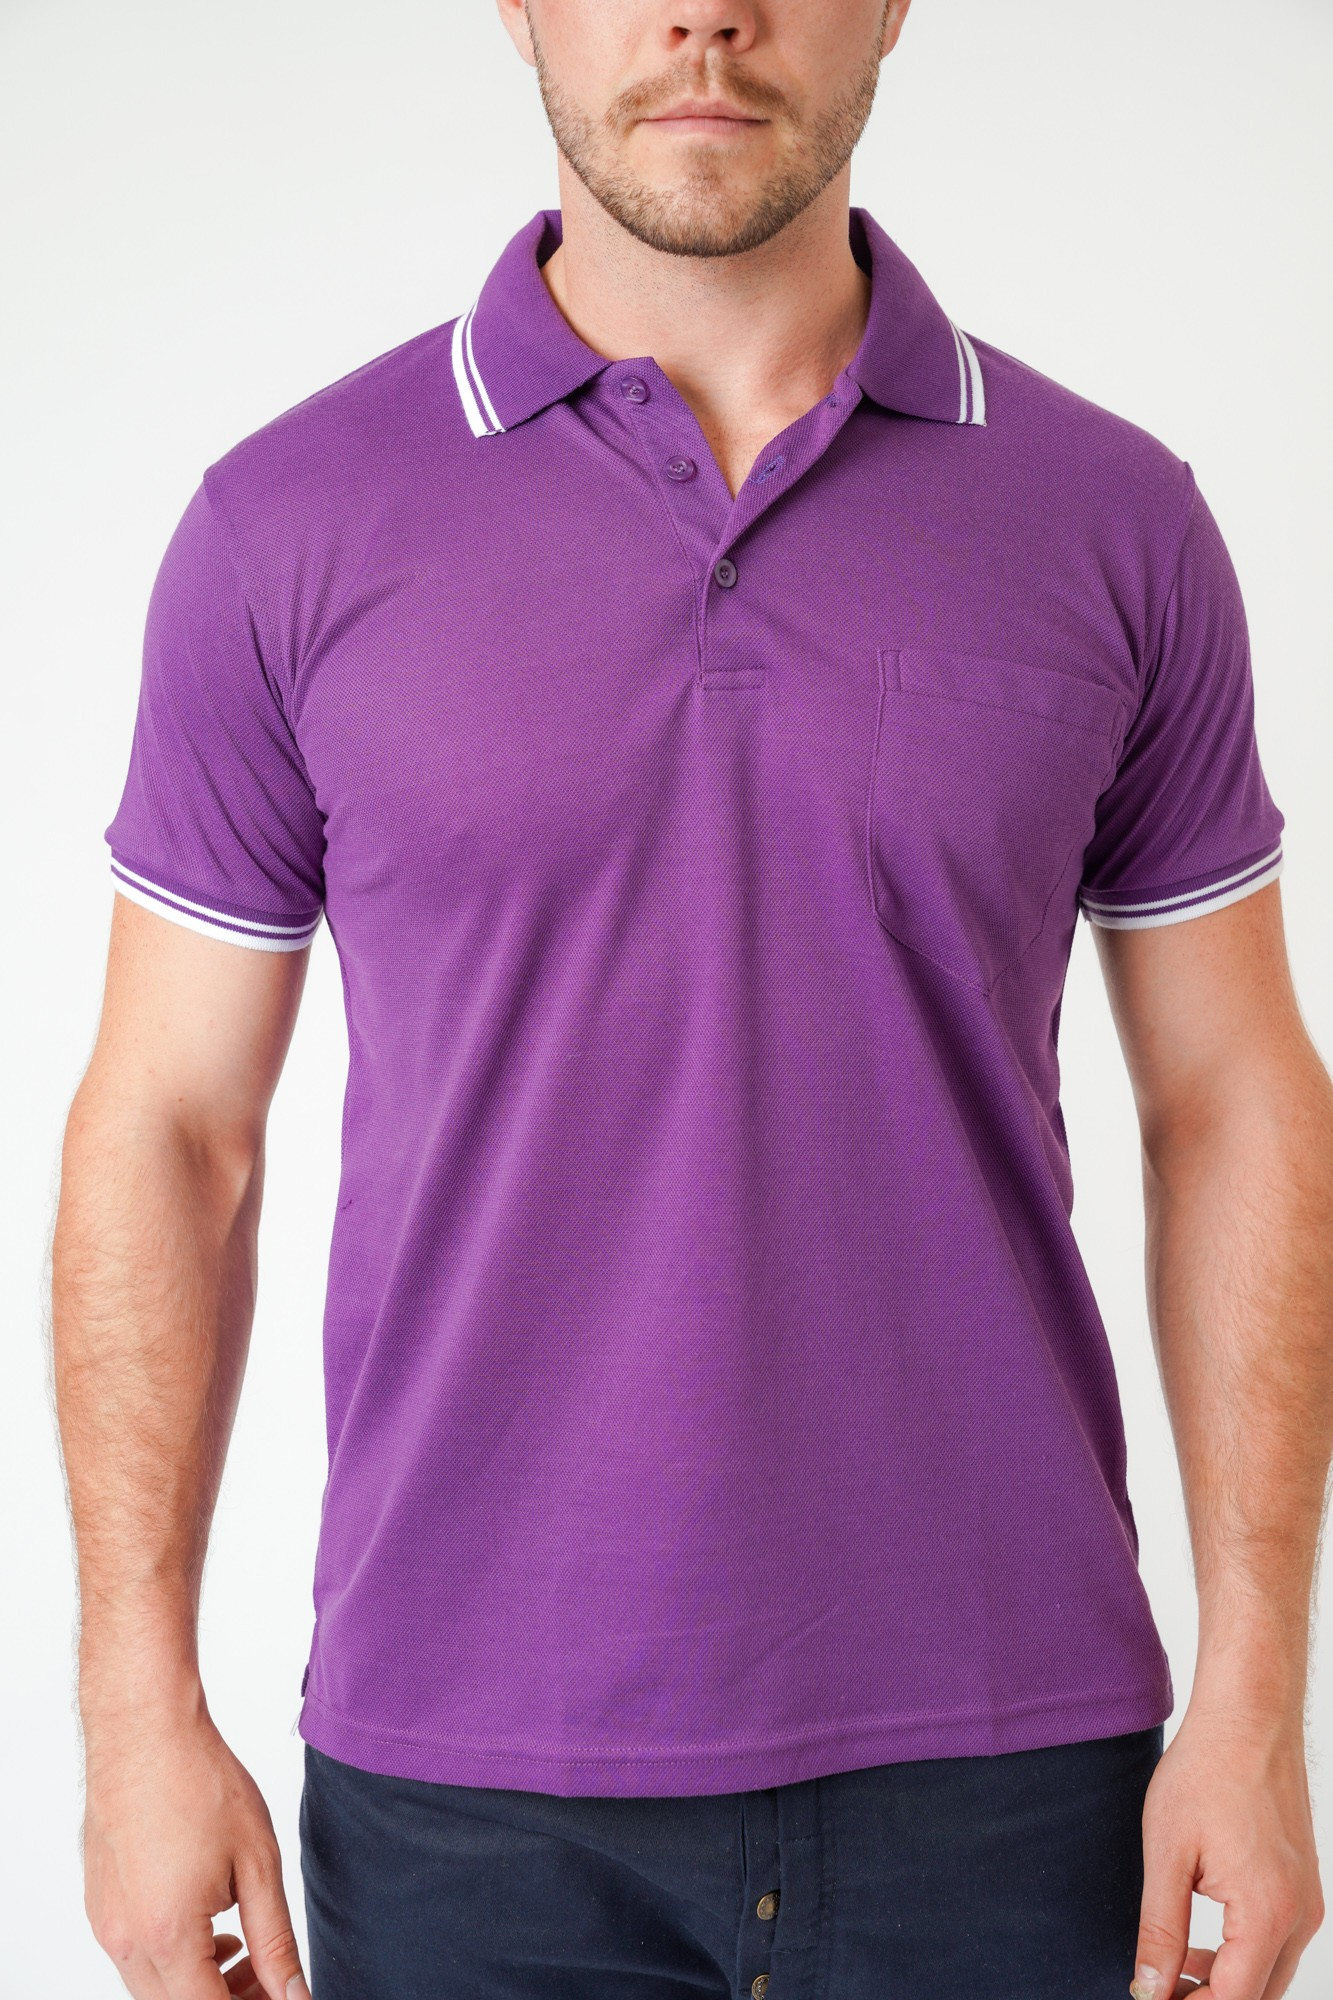 Tipping Polo Shirt